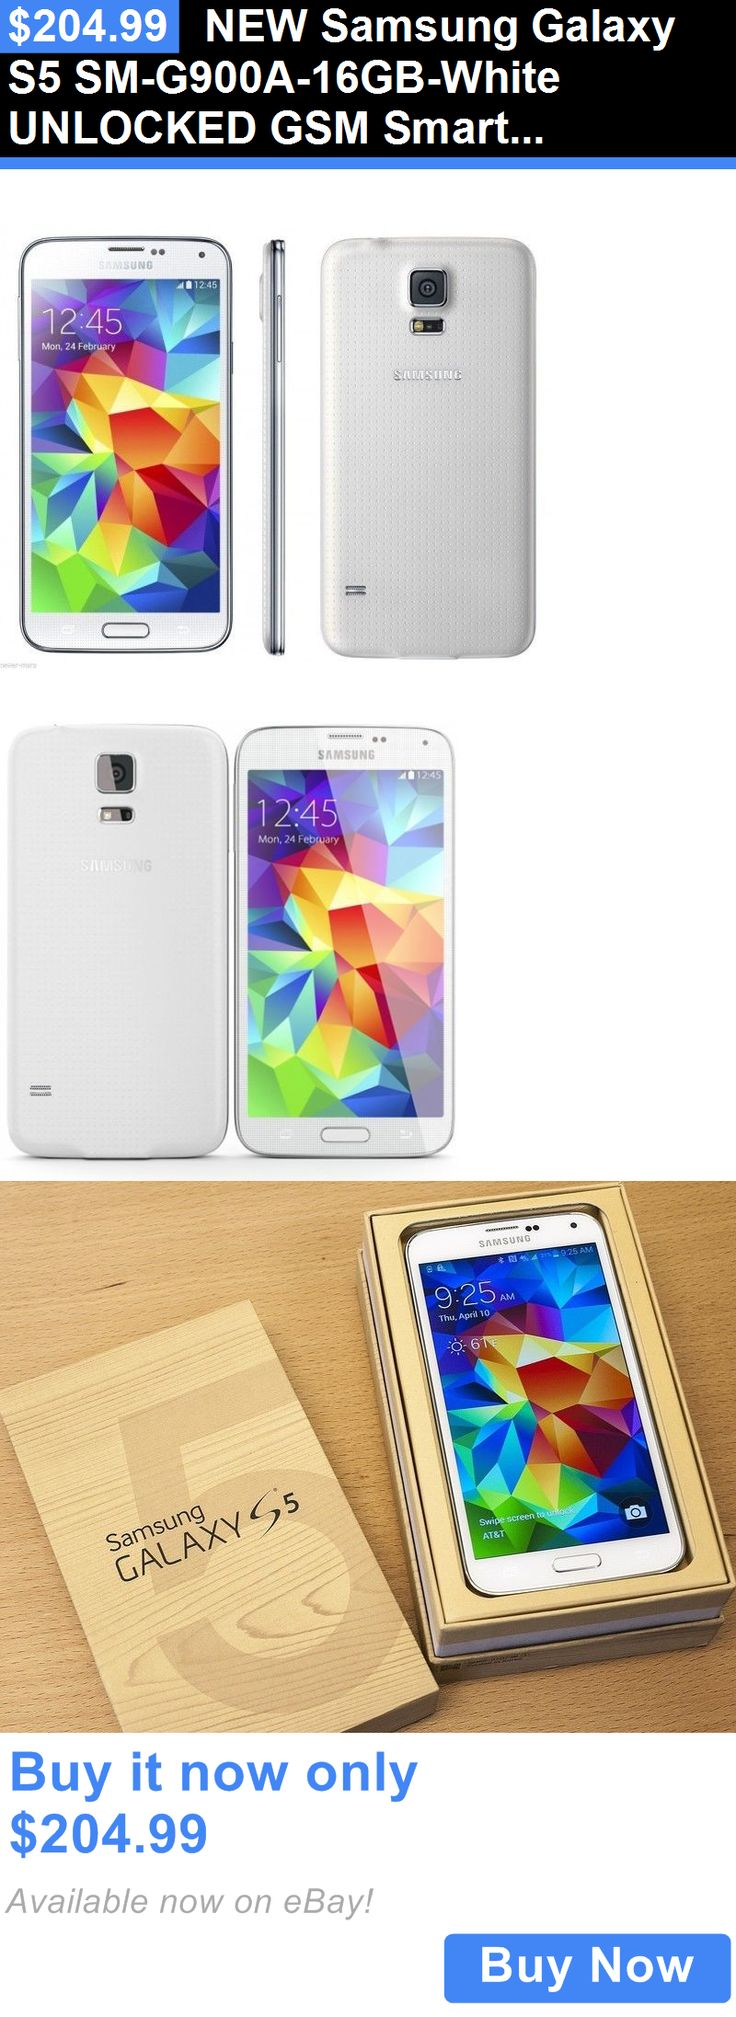 cell phones: New Samsung Galaxy S5 Sm-G900a-16Gb-White Unlocked Gsm Smartphone Atandt Tmobile BUY IT NOW ONLY: $204.99